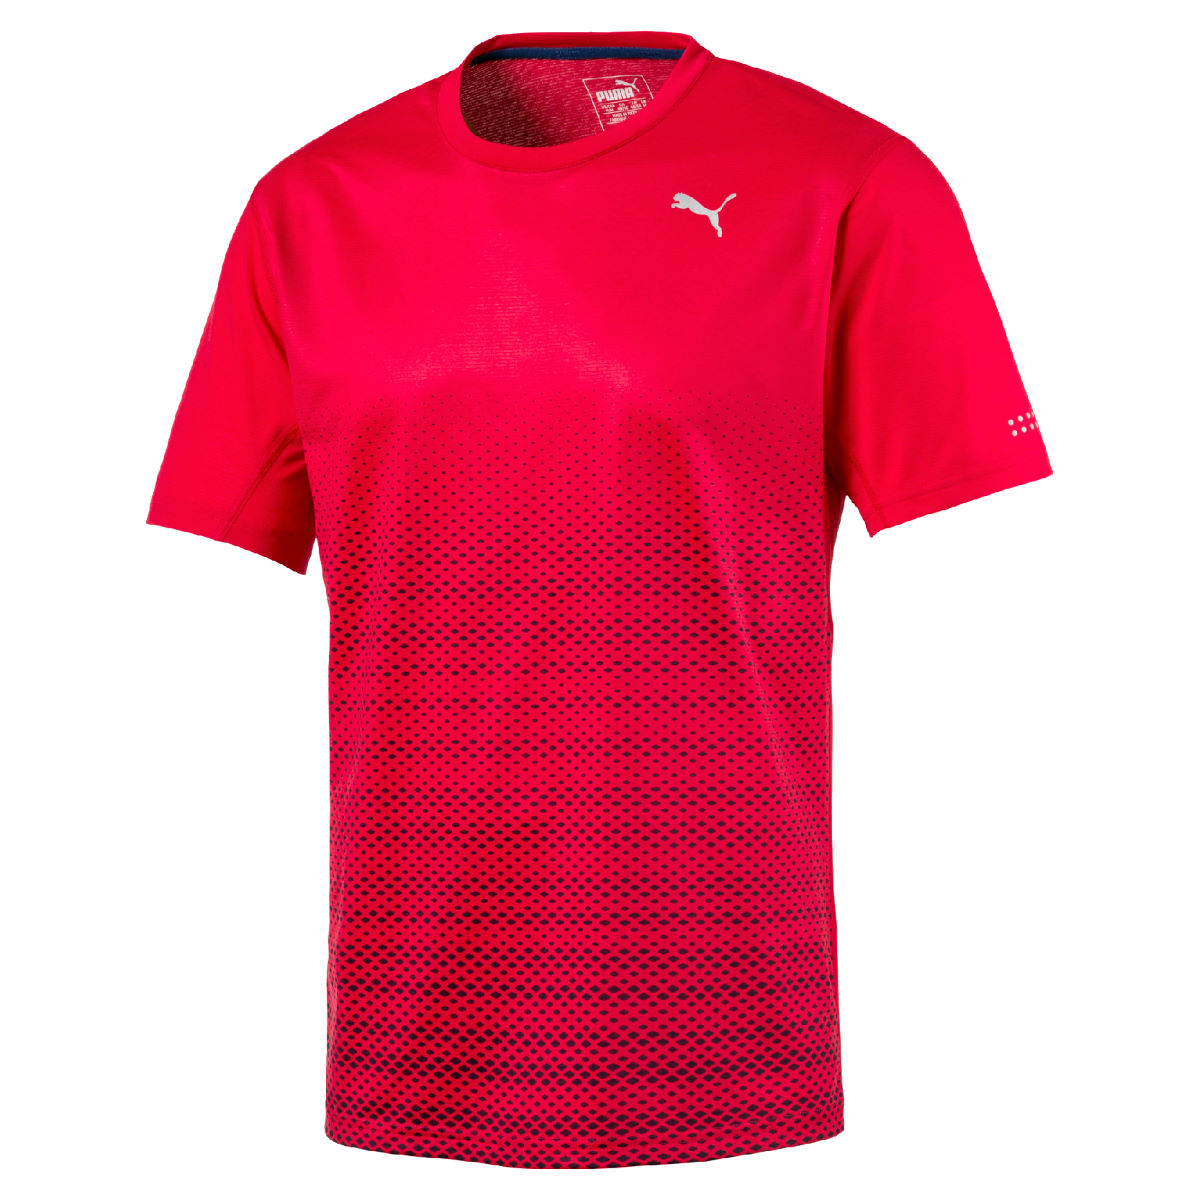 Puma Graphic Short Sleeve Run Tee - XL Toreador Heather